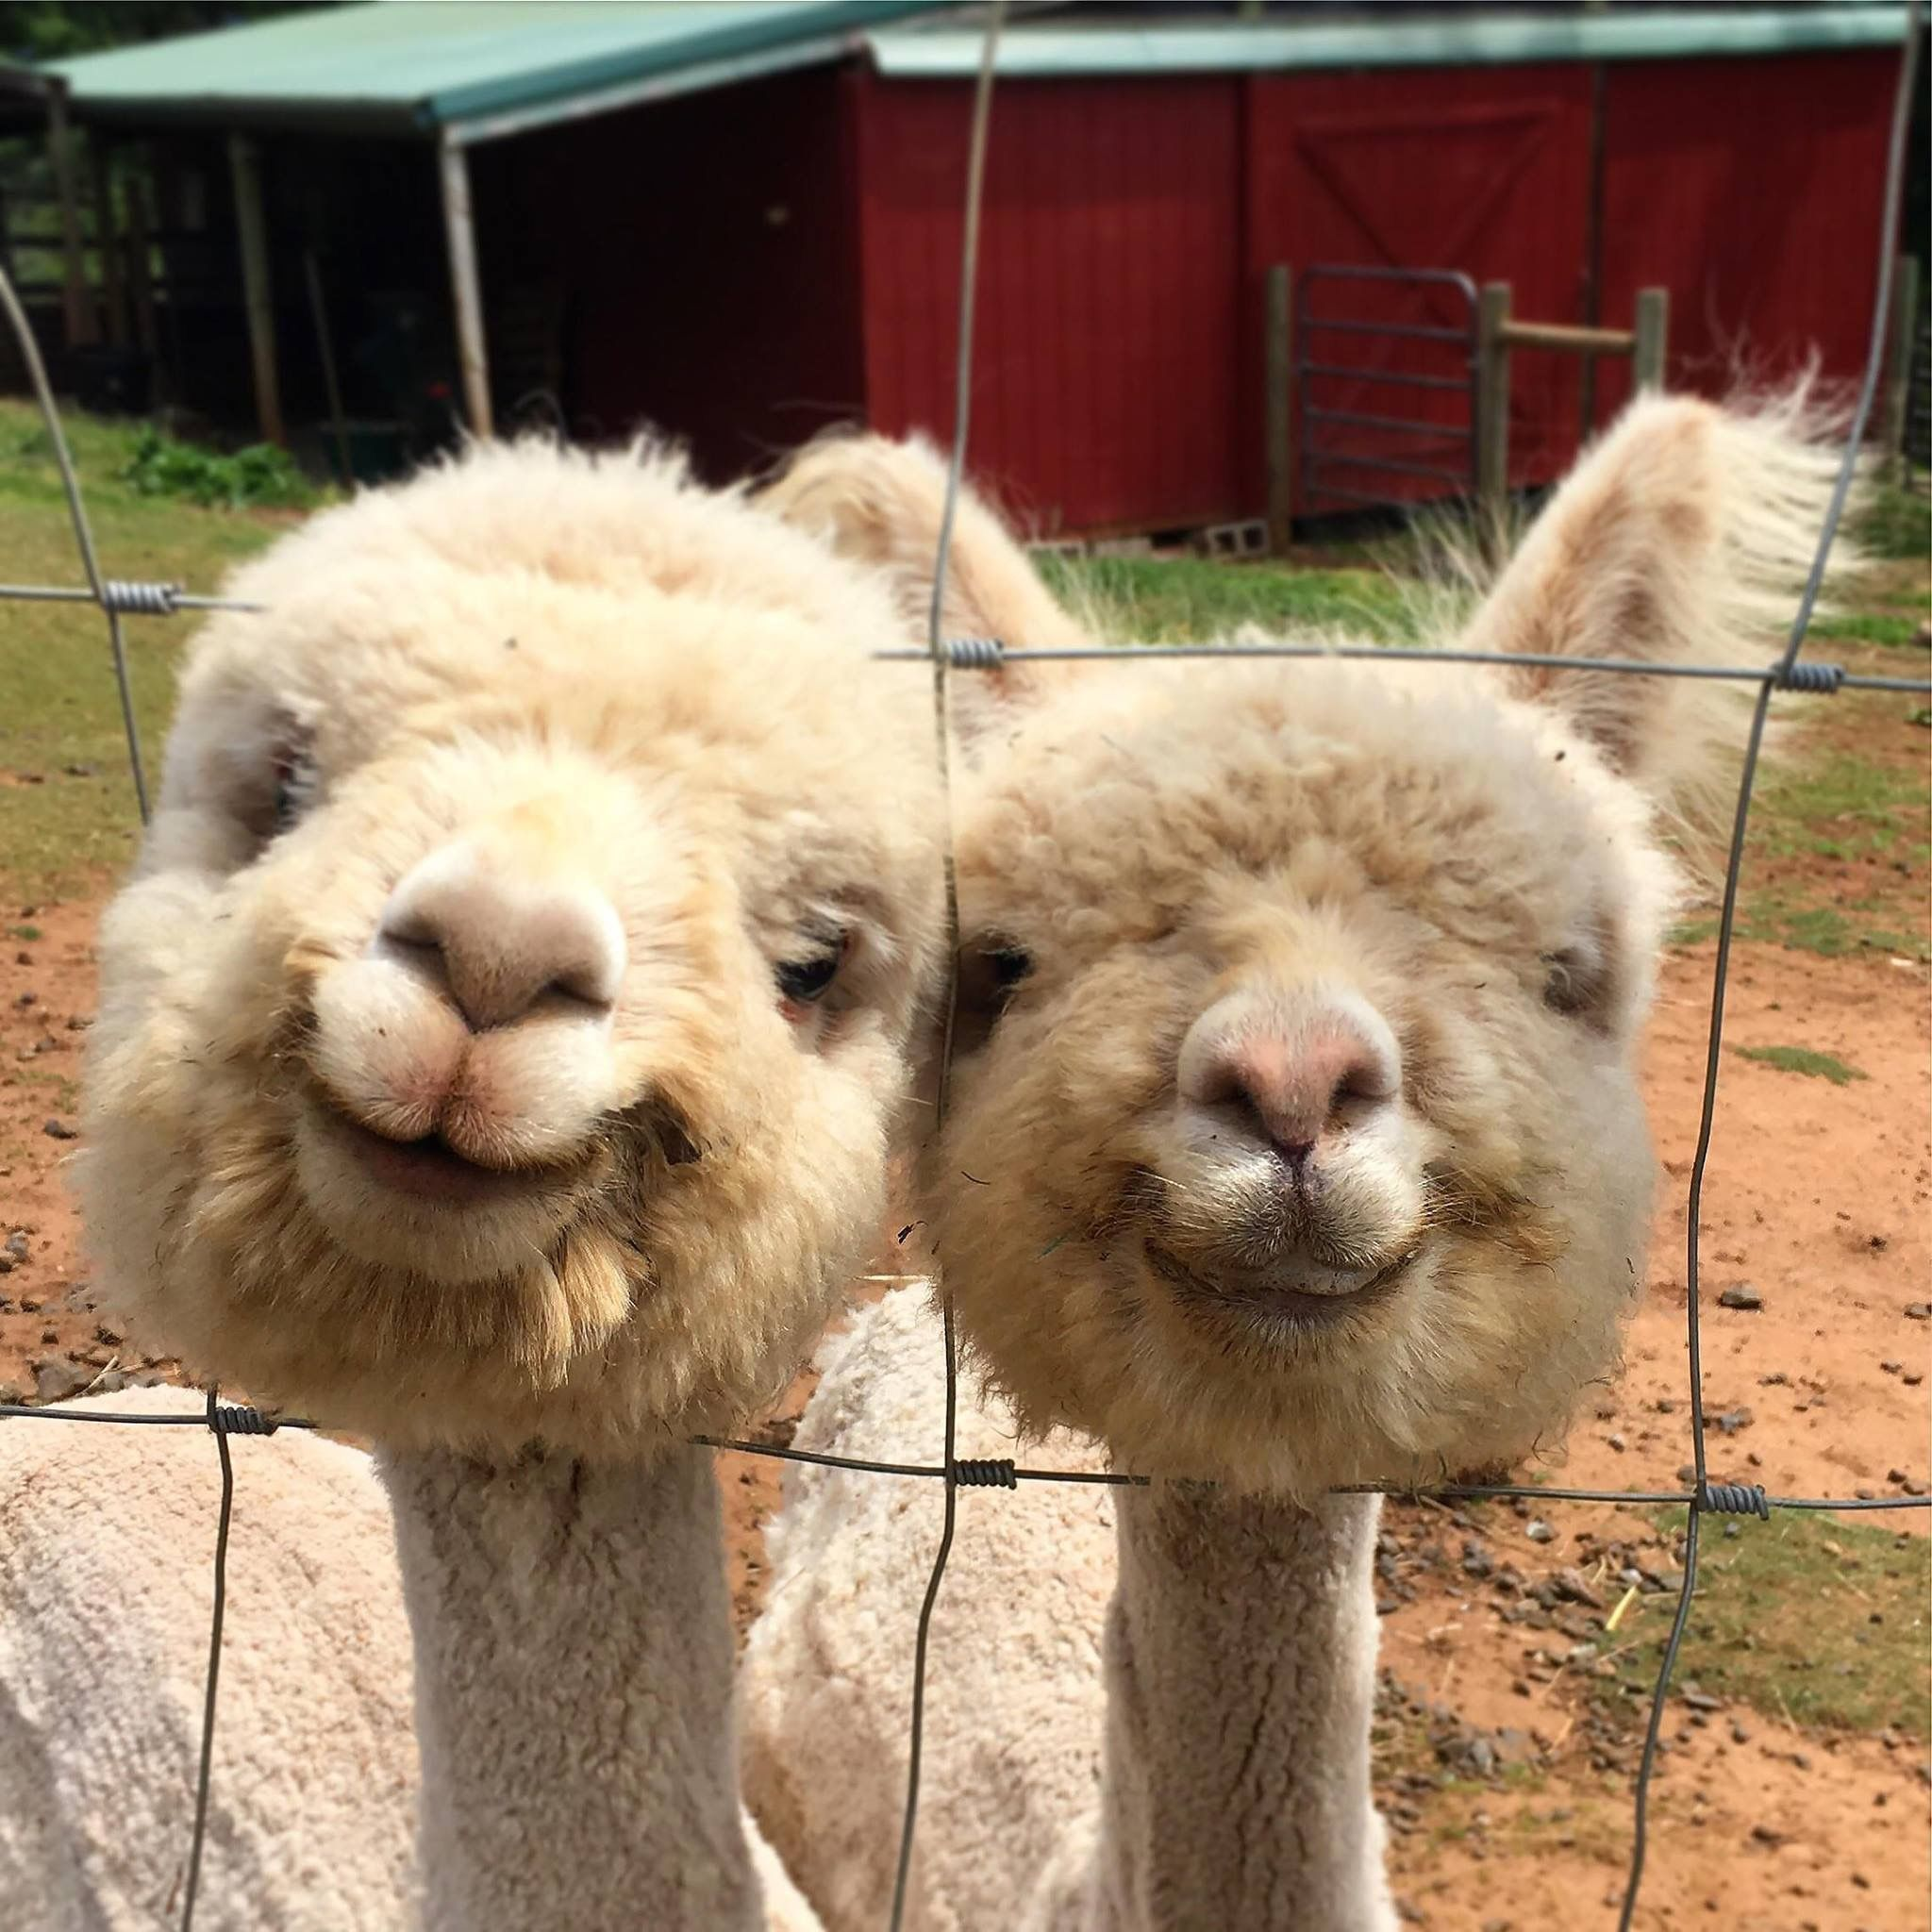 Cheeky Grins Other Critters Pinterest Cute Animals